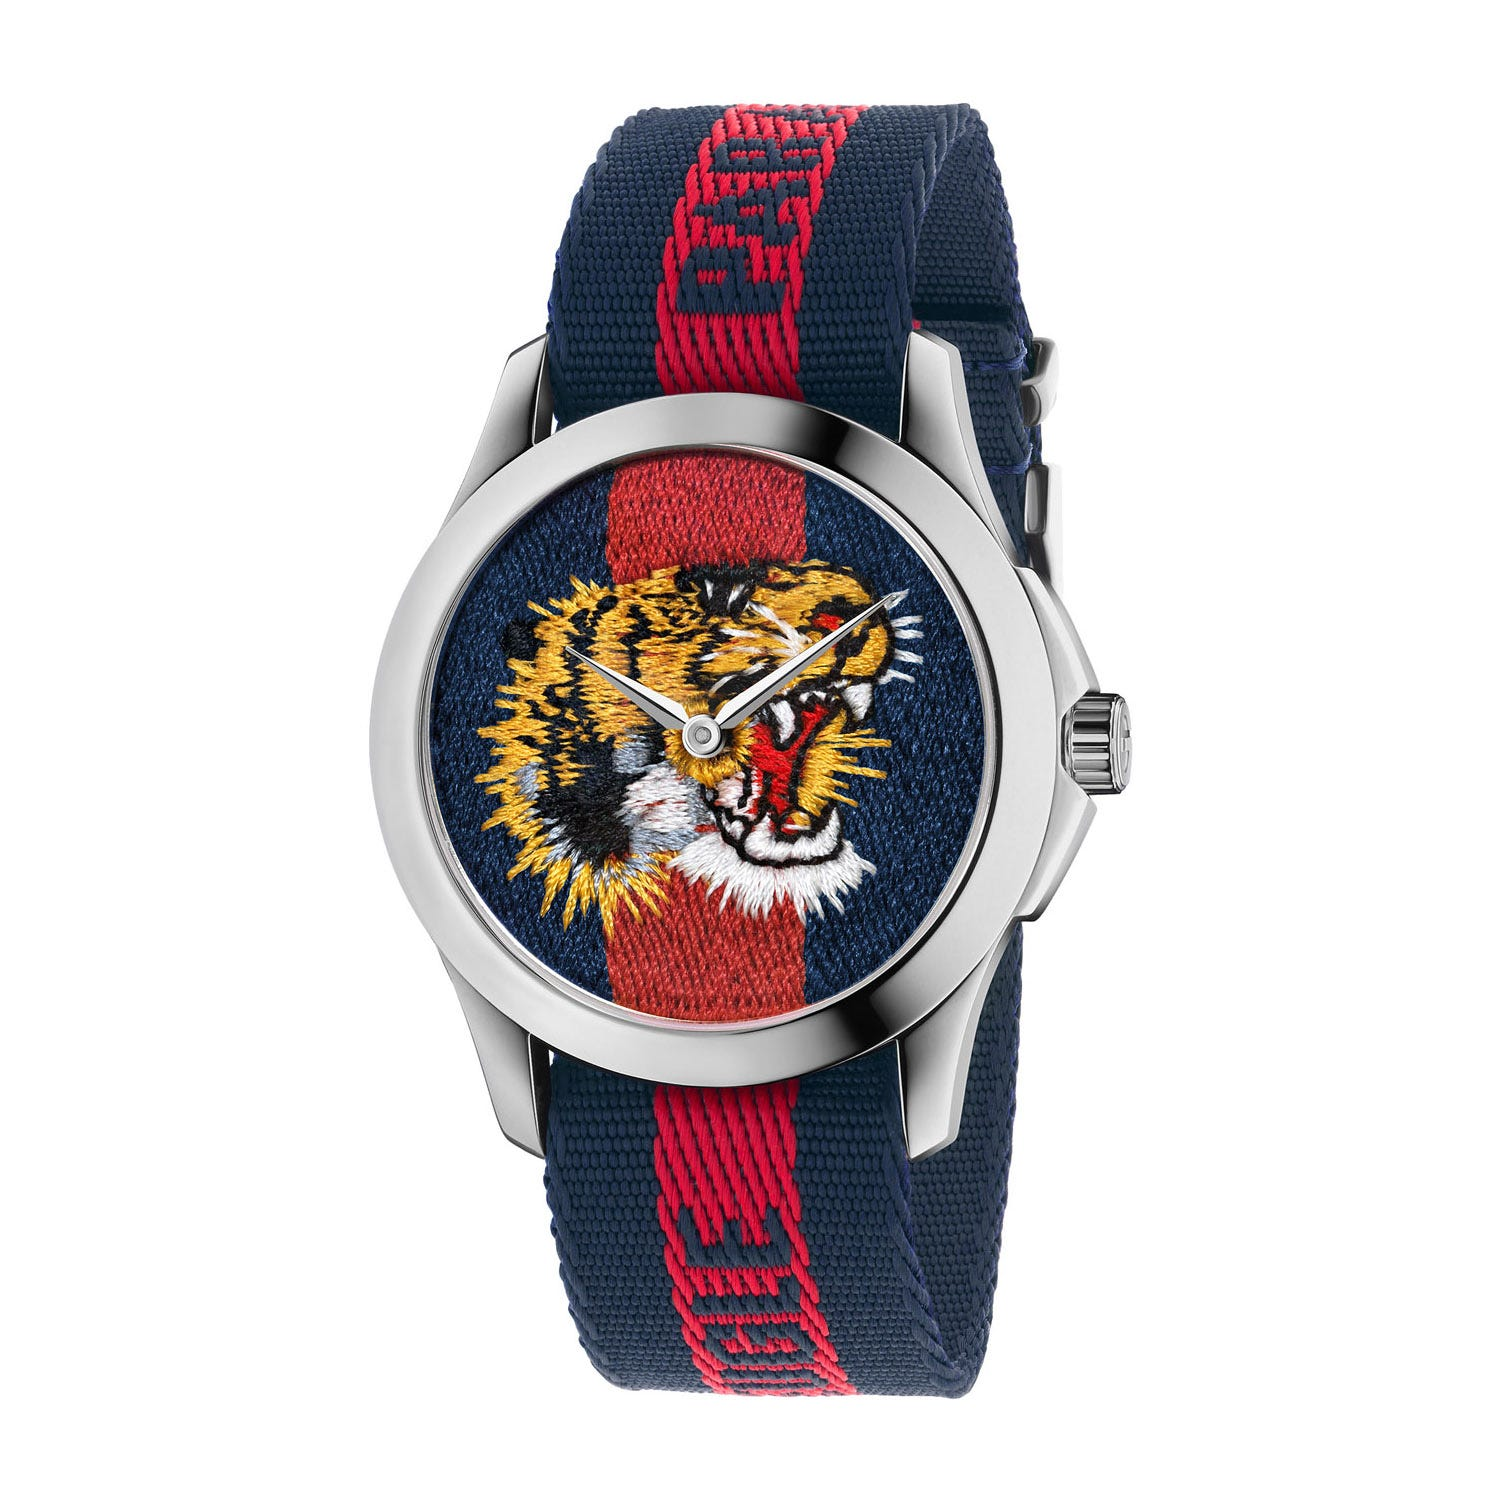 Gucci Le Marche Des Merveilles Tiger Striped Nylon Men's Watch